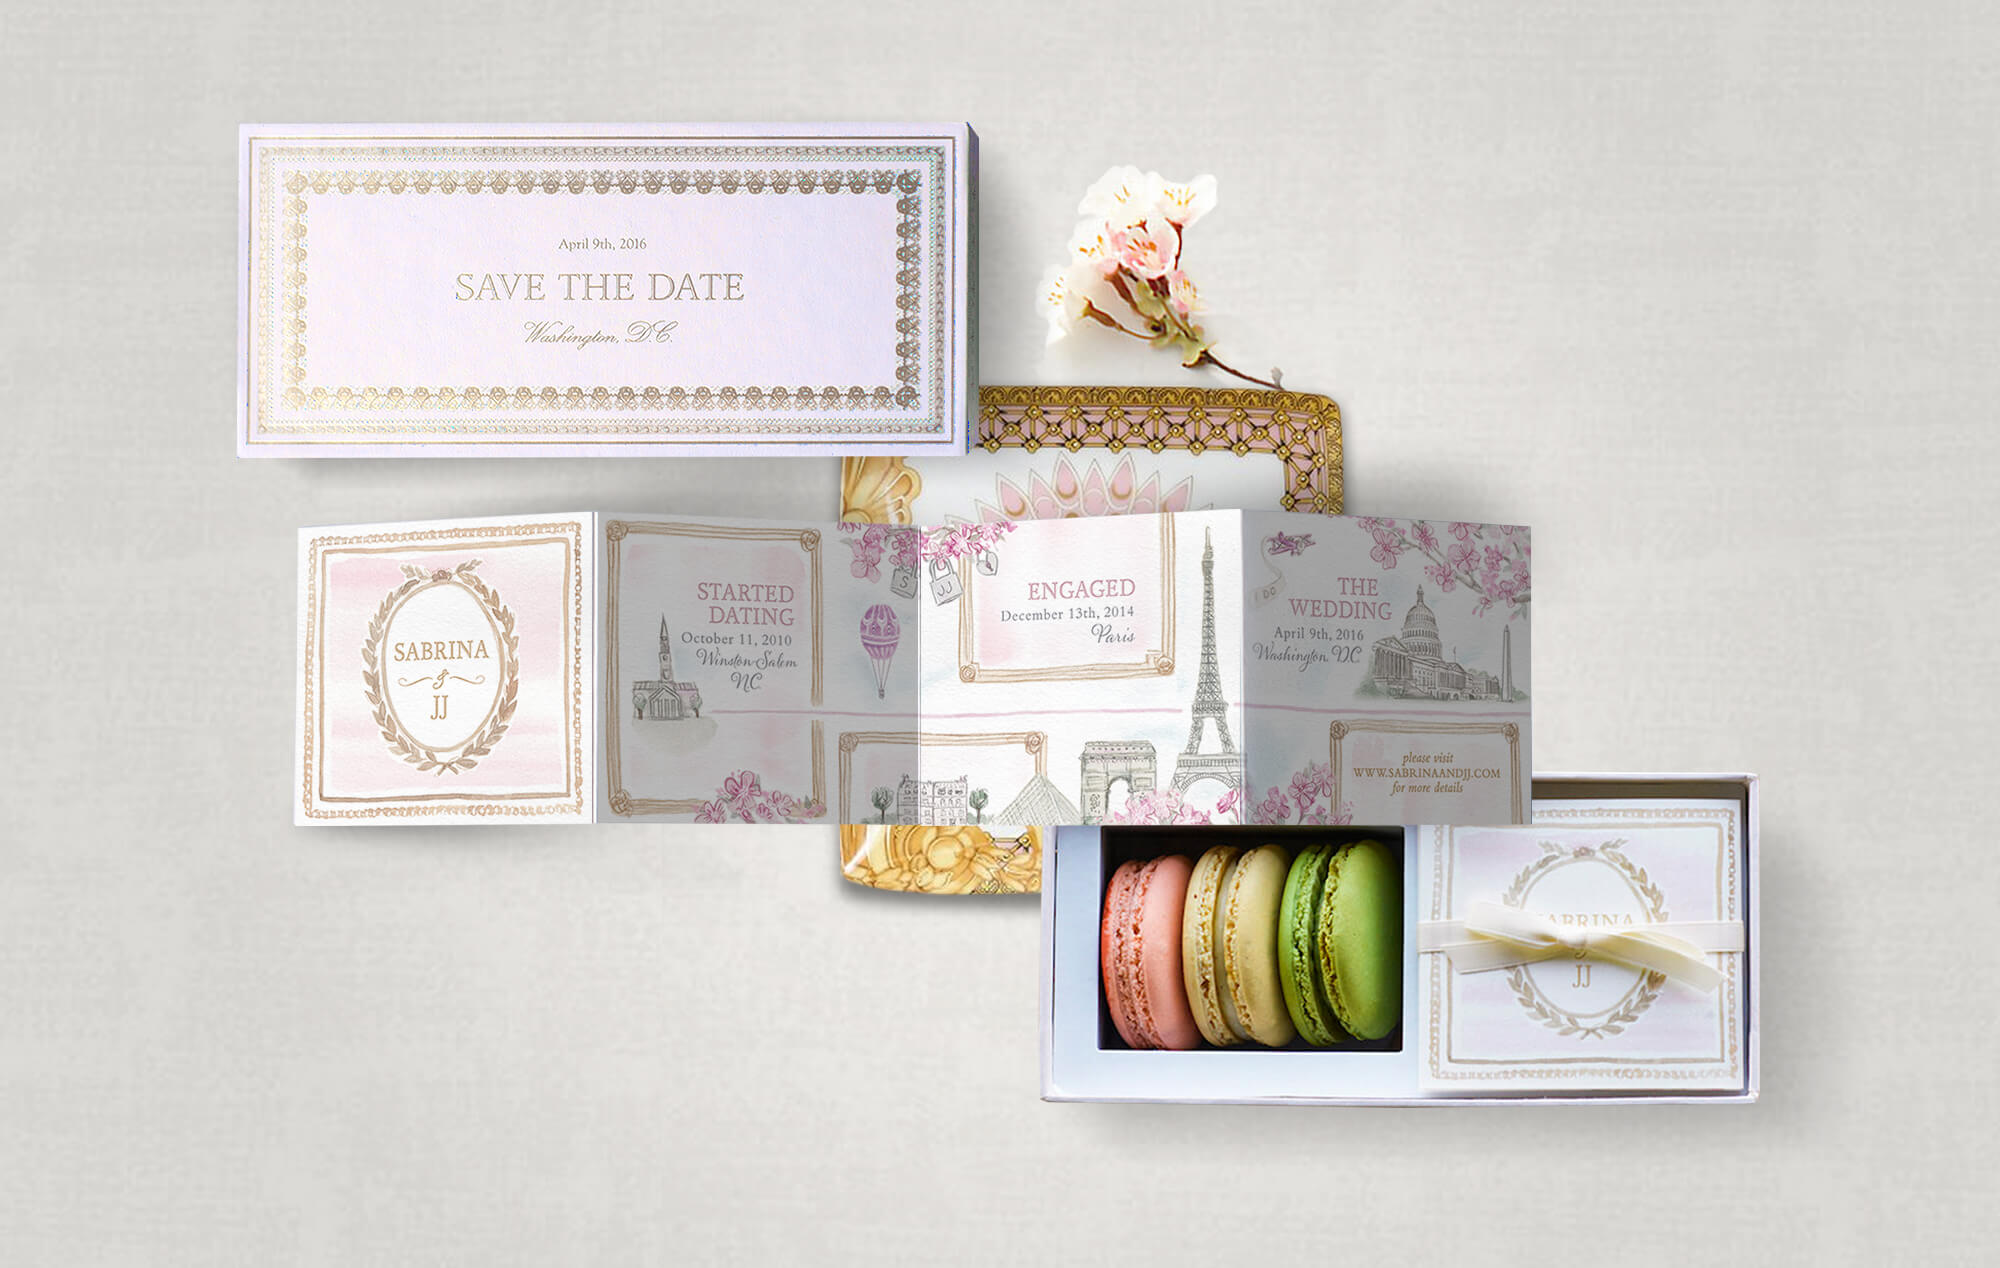 La Durée inspired macaron box save the date